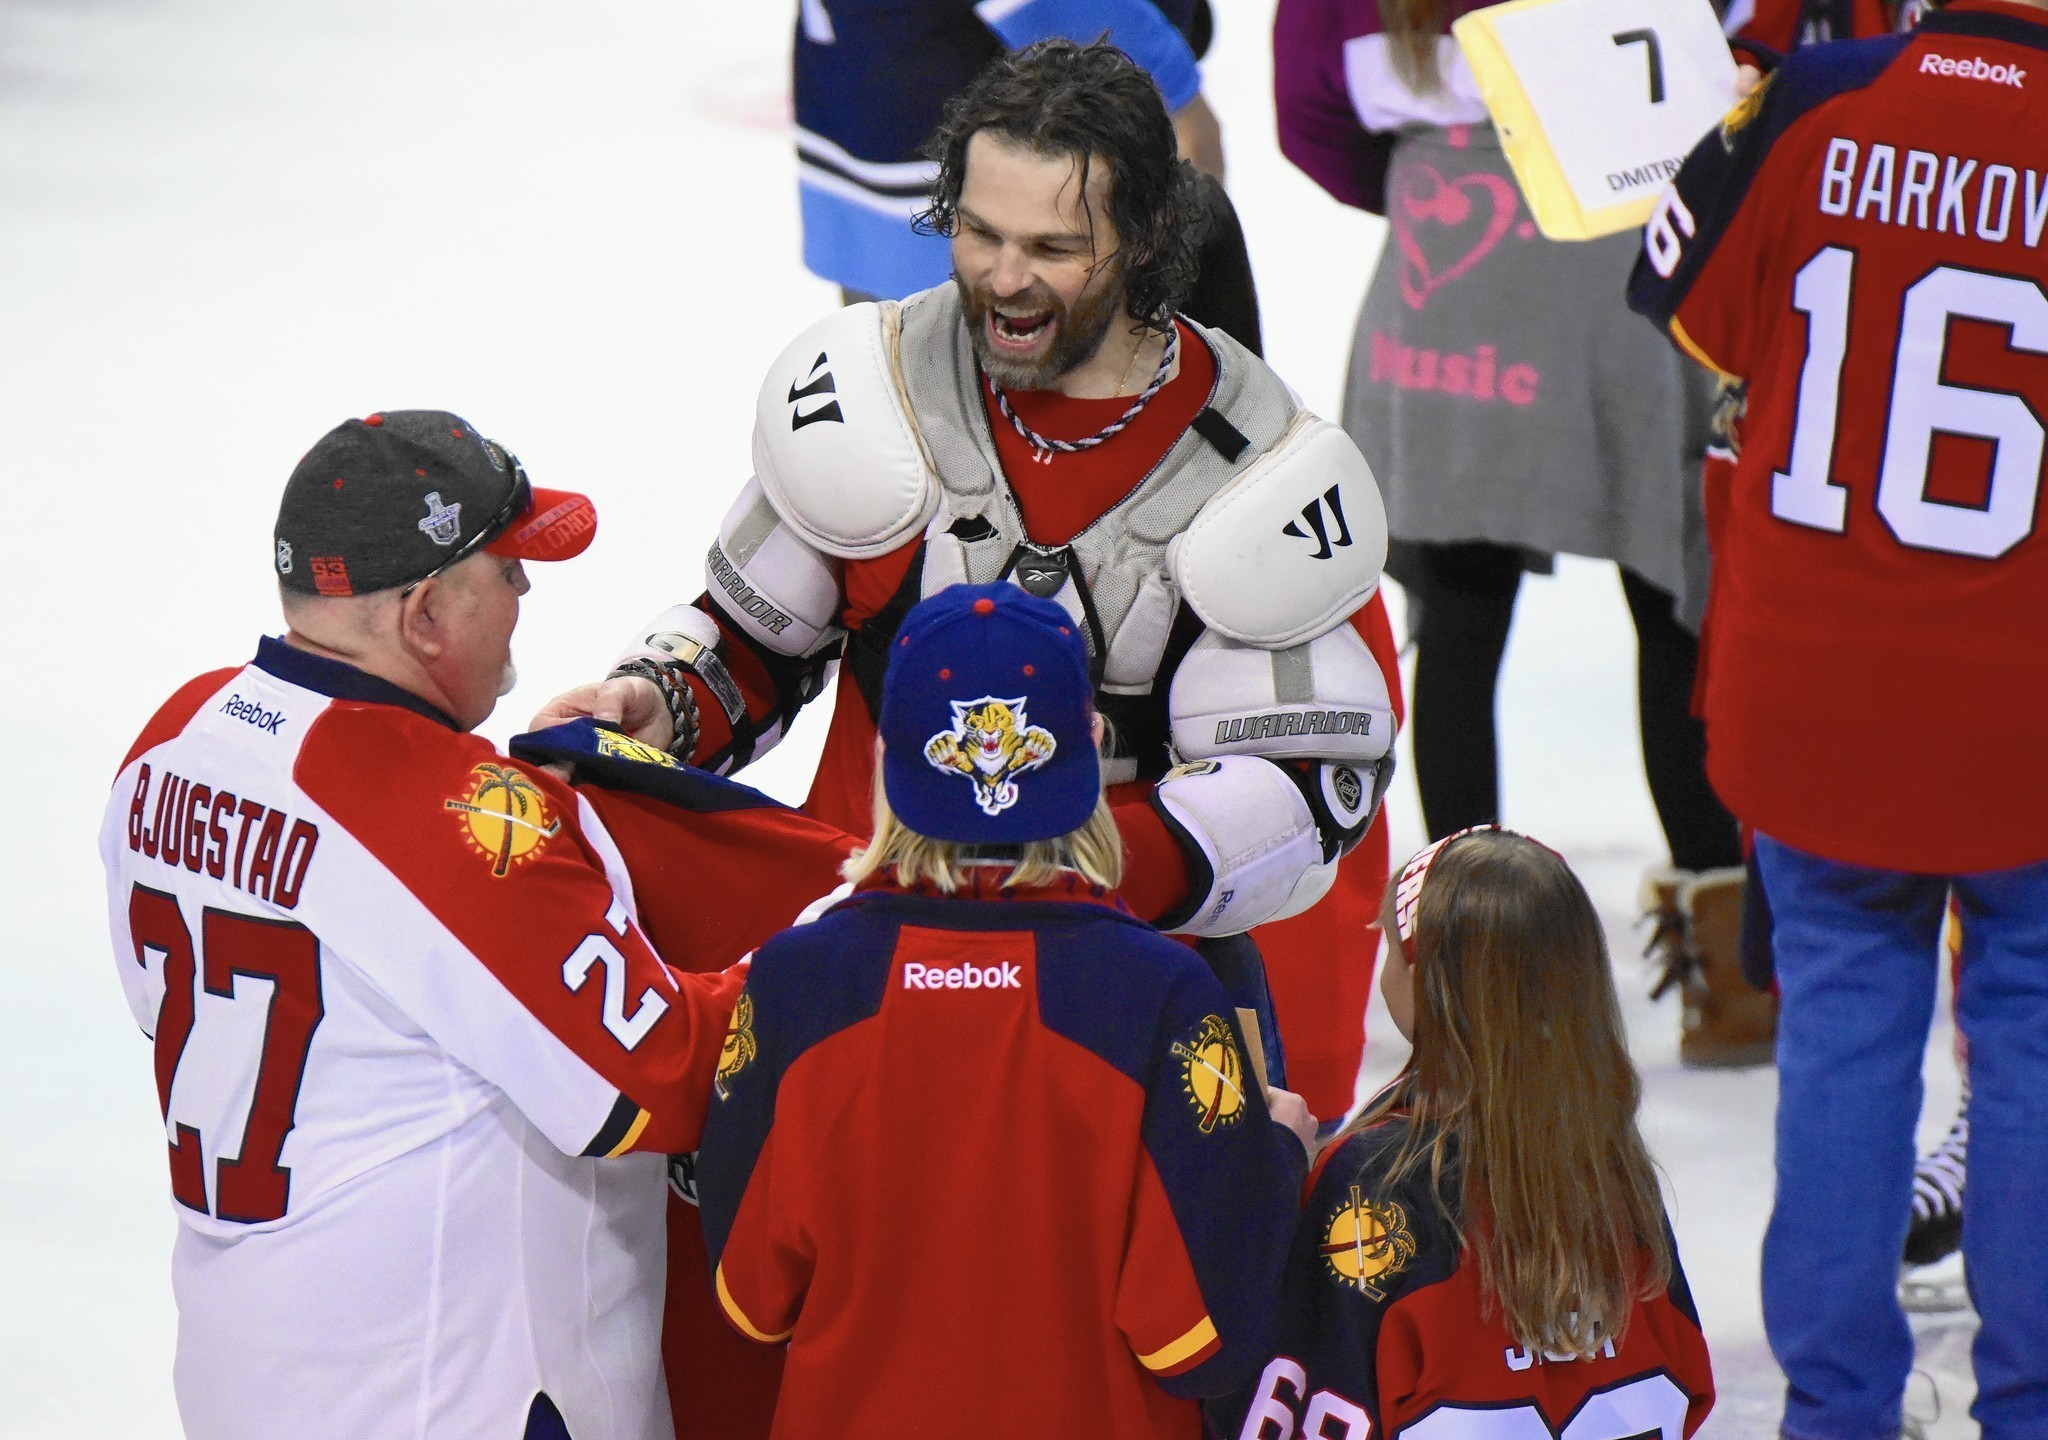 Sfl-jaromir-jagr-will-not-play-in-world-cup-of-hockey-event-20160524